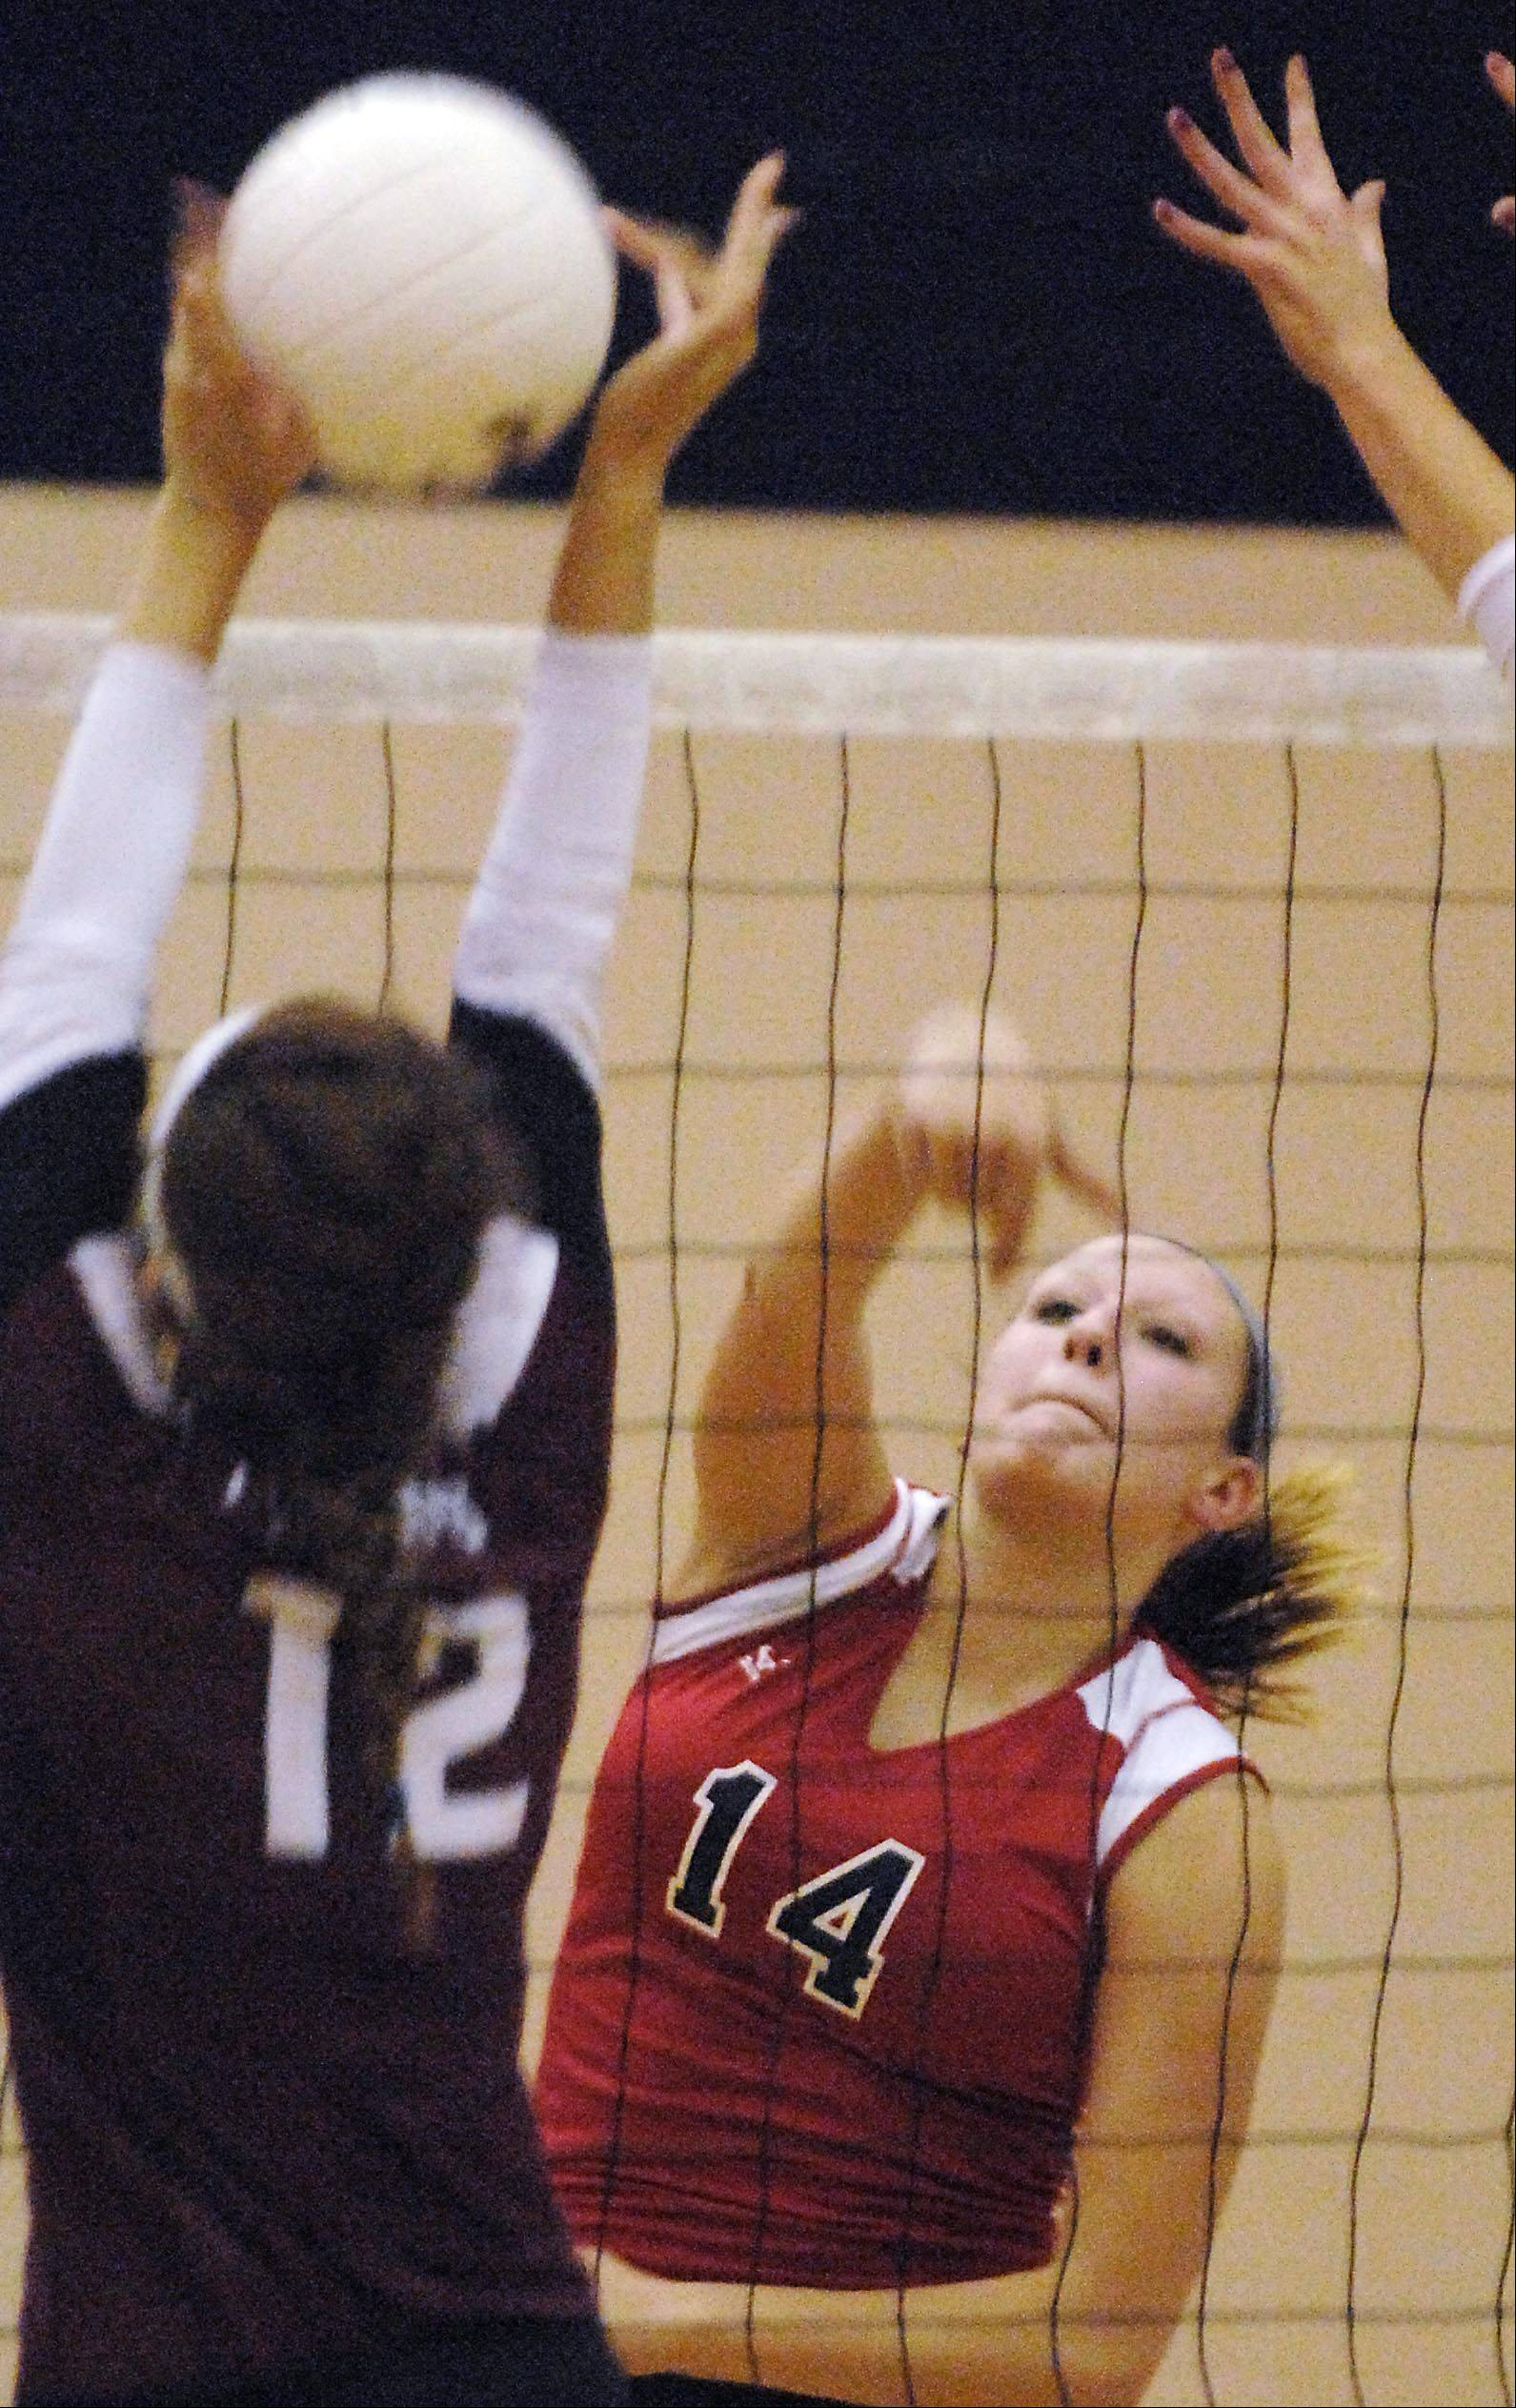 Elgin's Emma Sirridge slows down a spike by South Elgin's Alyssa Montag Thursday in South Elgin.